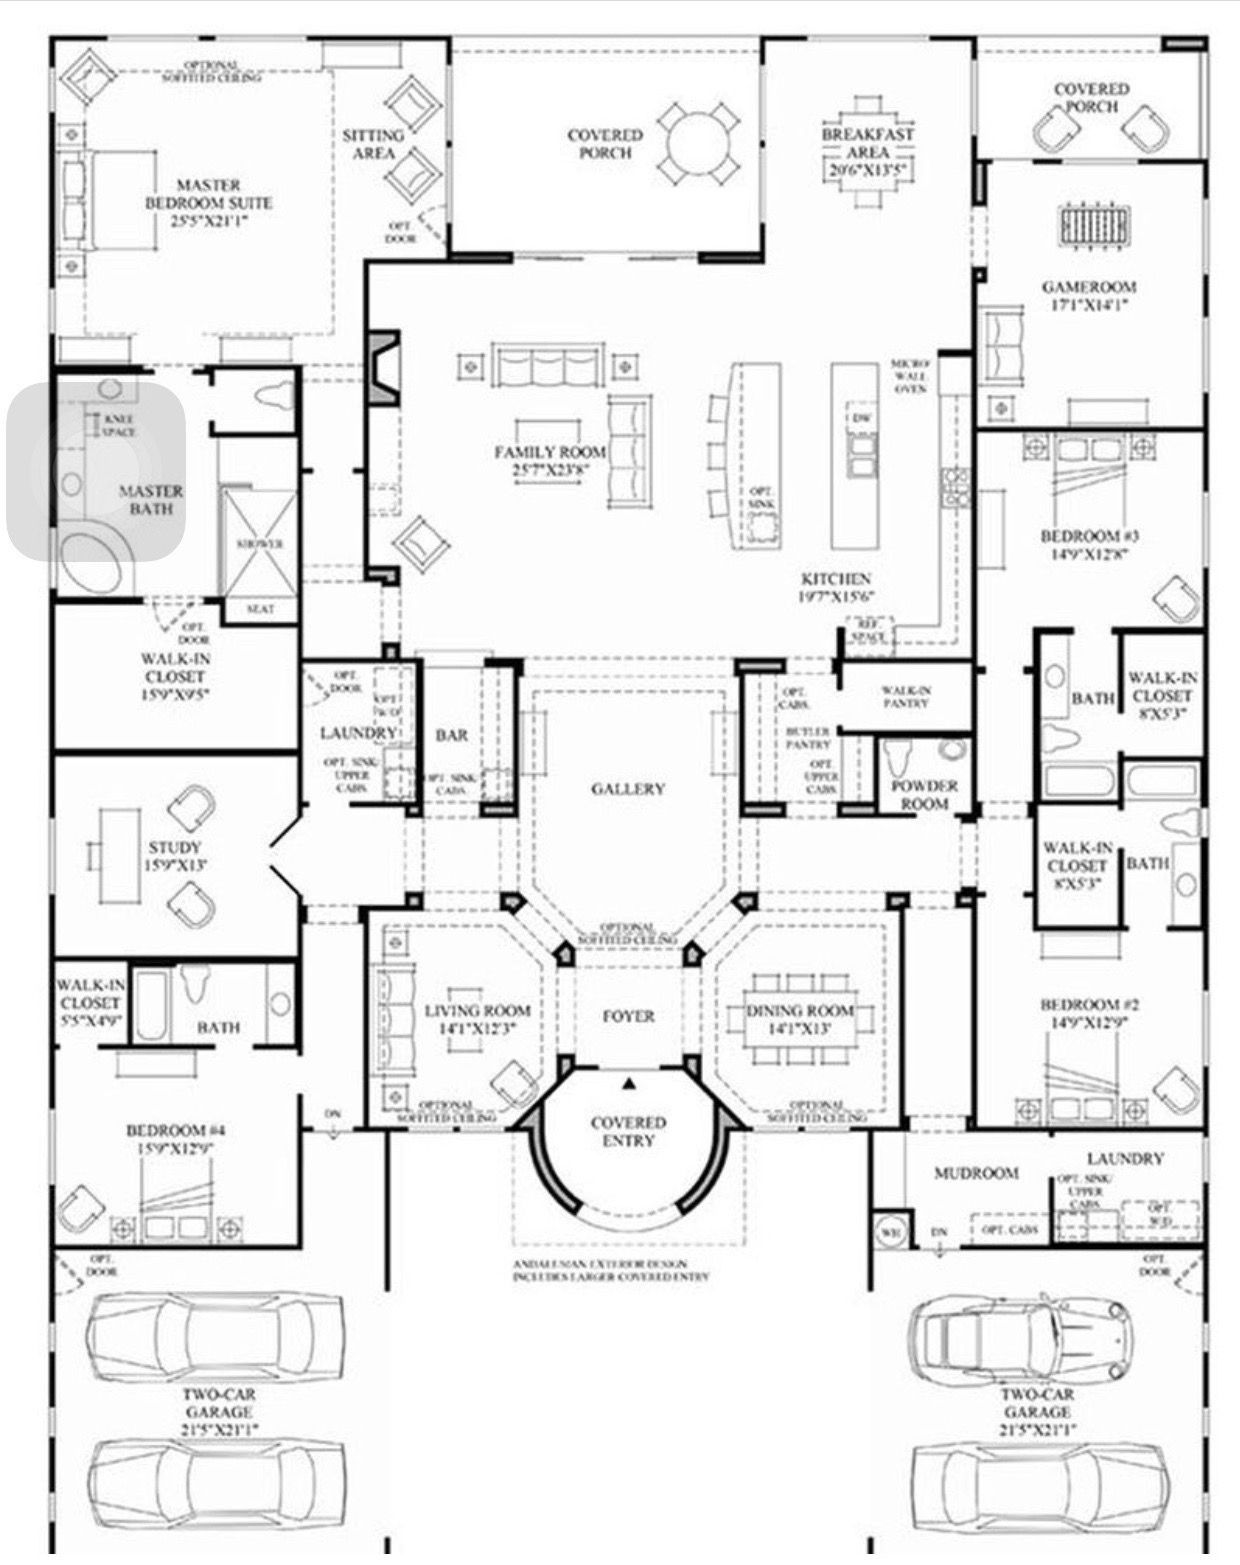 Floor Plan For A Mansion In The Sims 4 Bedroom House Plans Ranch House Plans House Blueprints